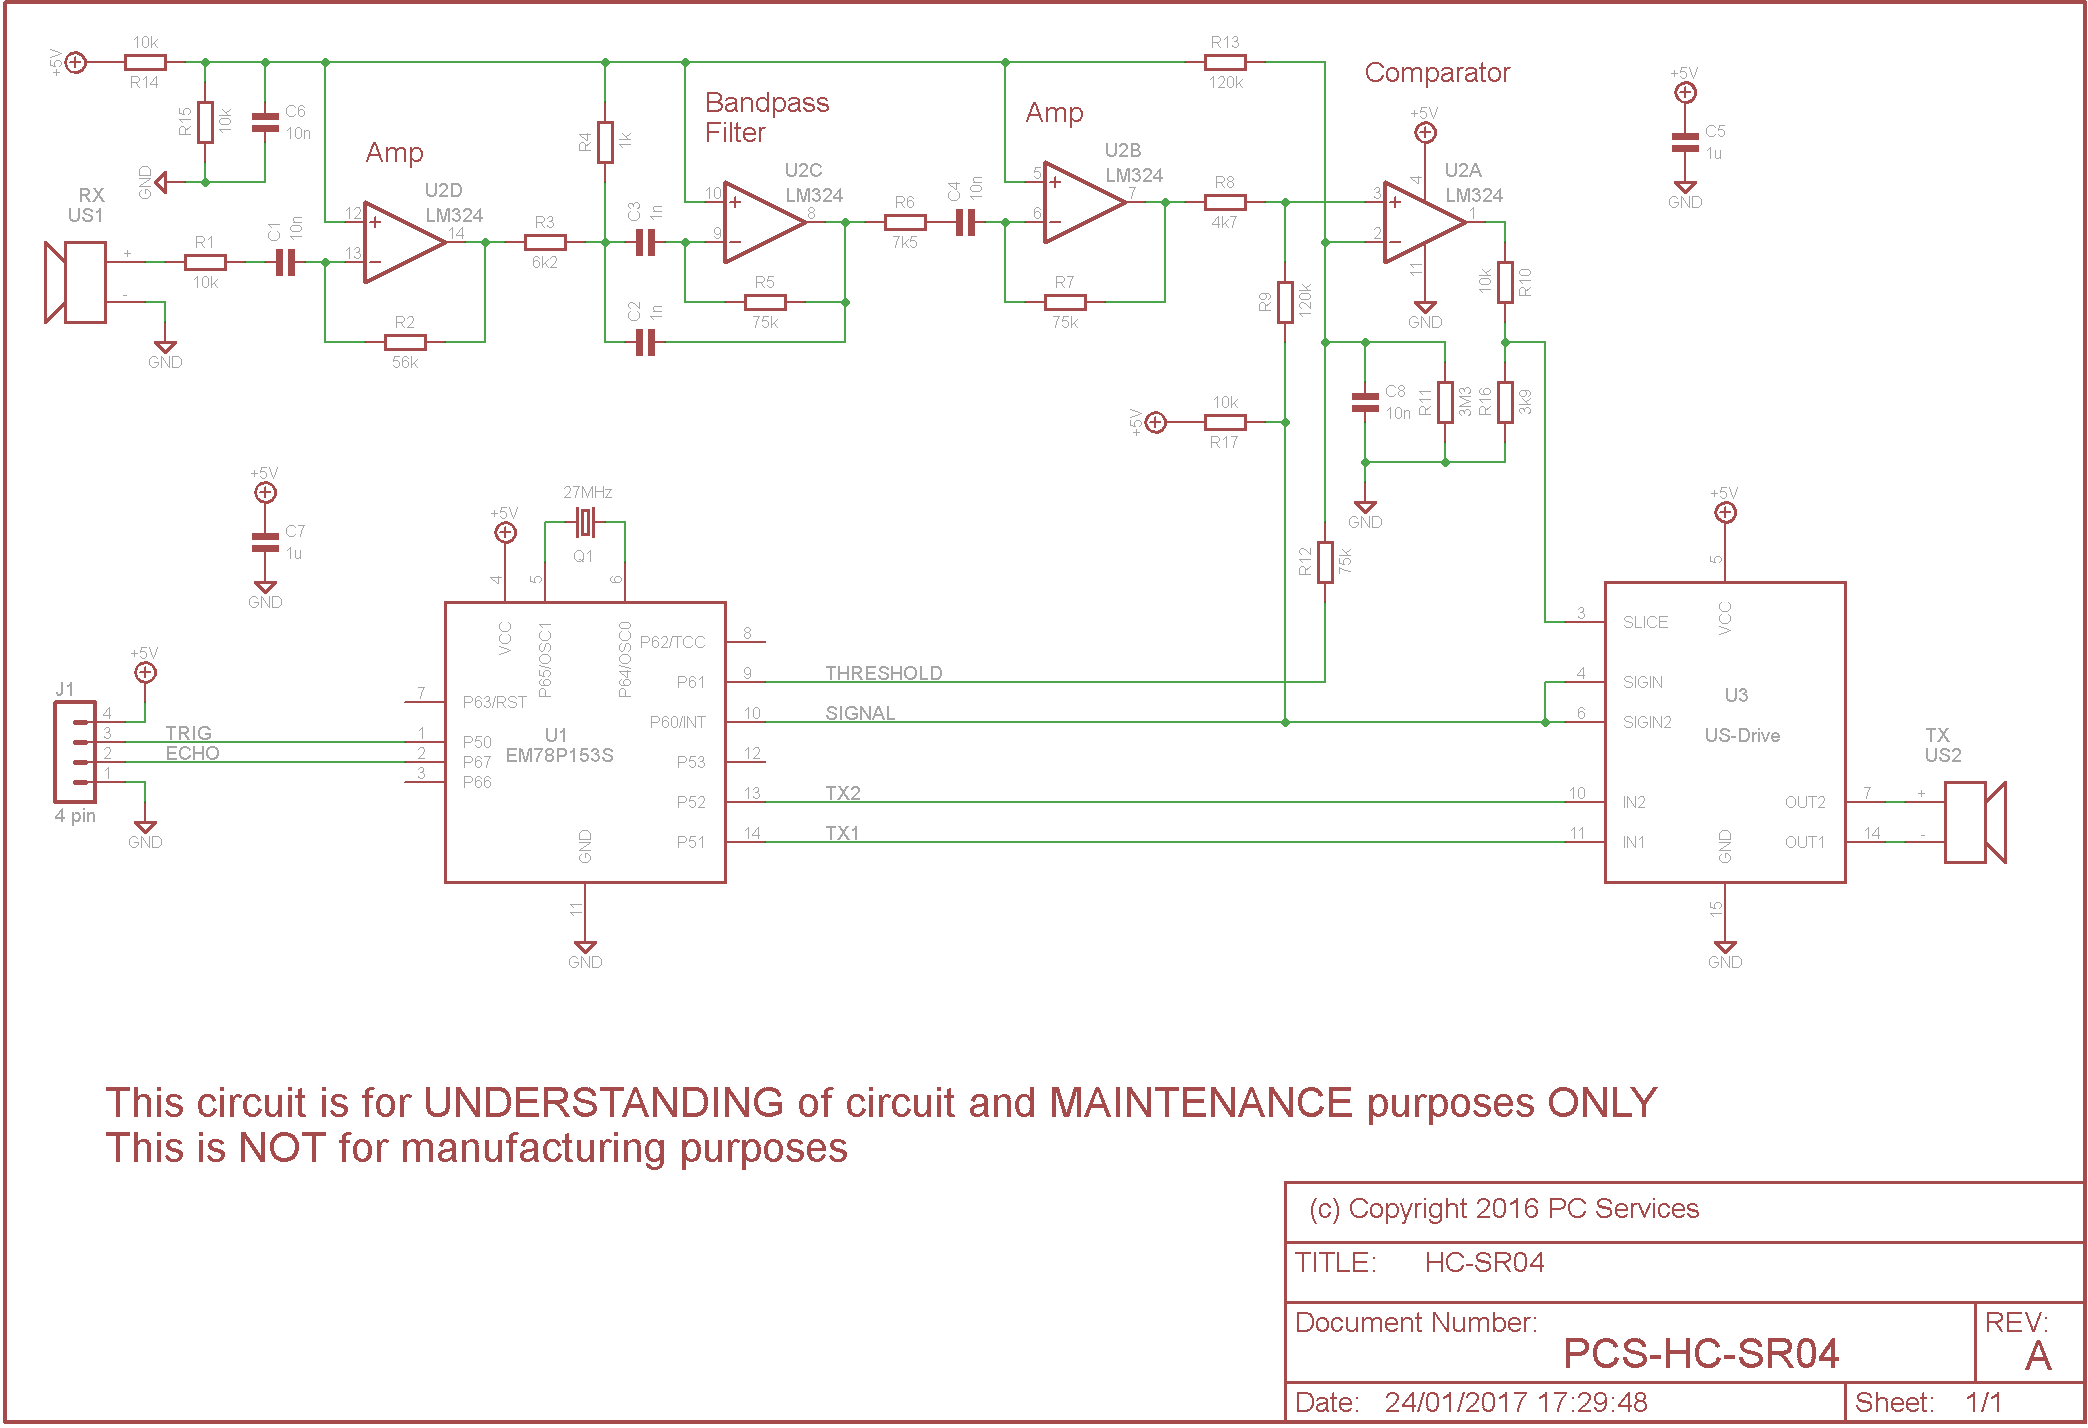 Pc Services Circuit Ultrasonic Range Sensing All Diagram Hc Sr04 Click To Enlarge